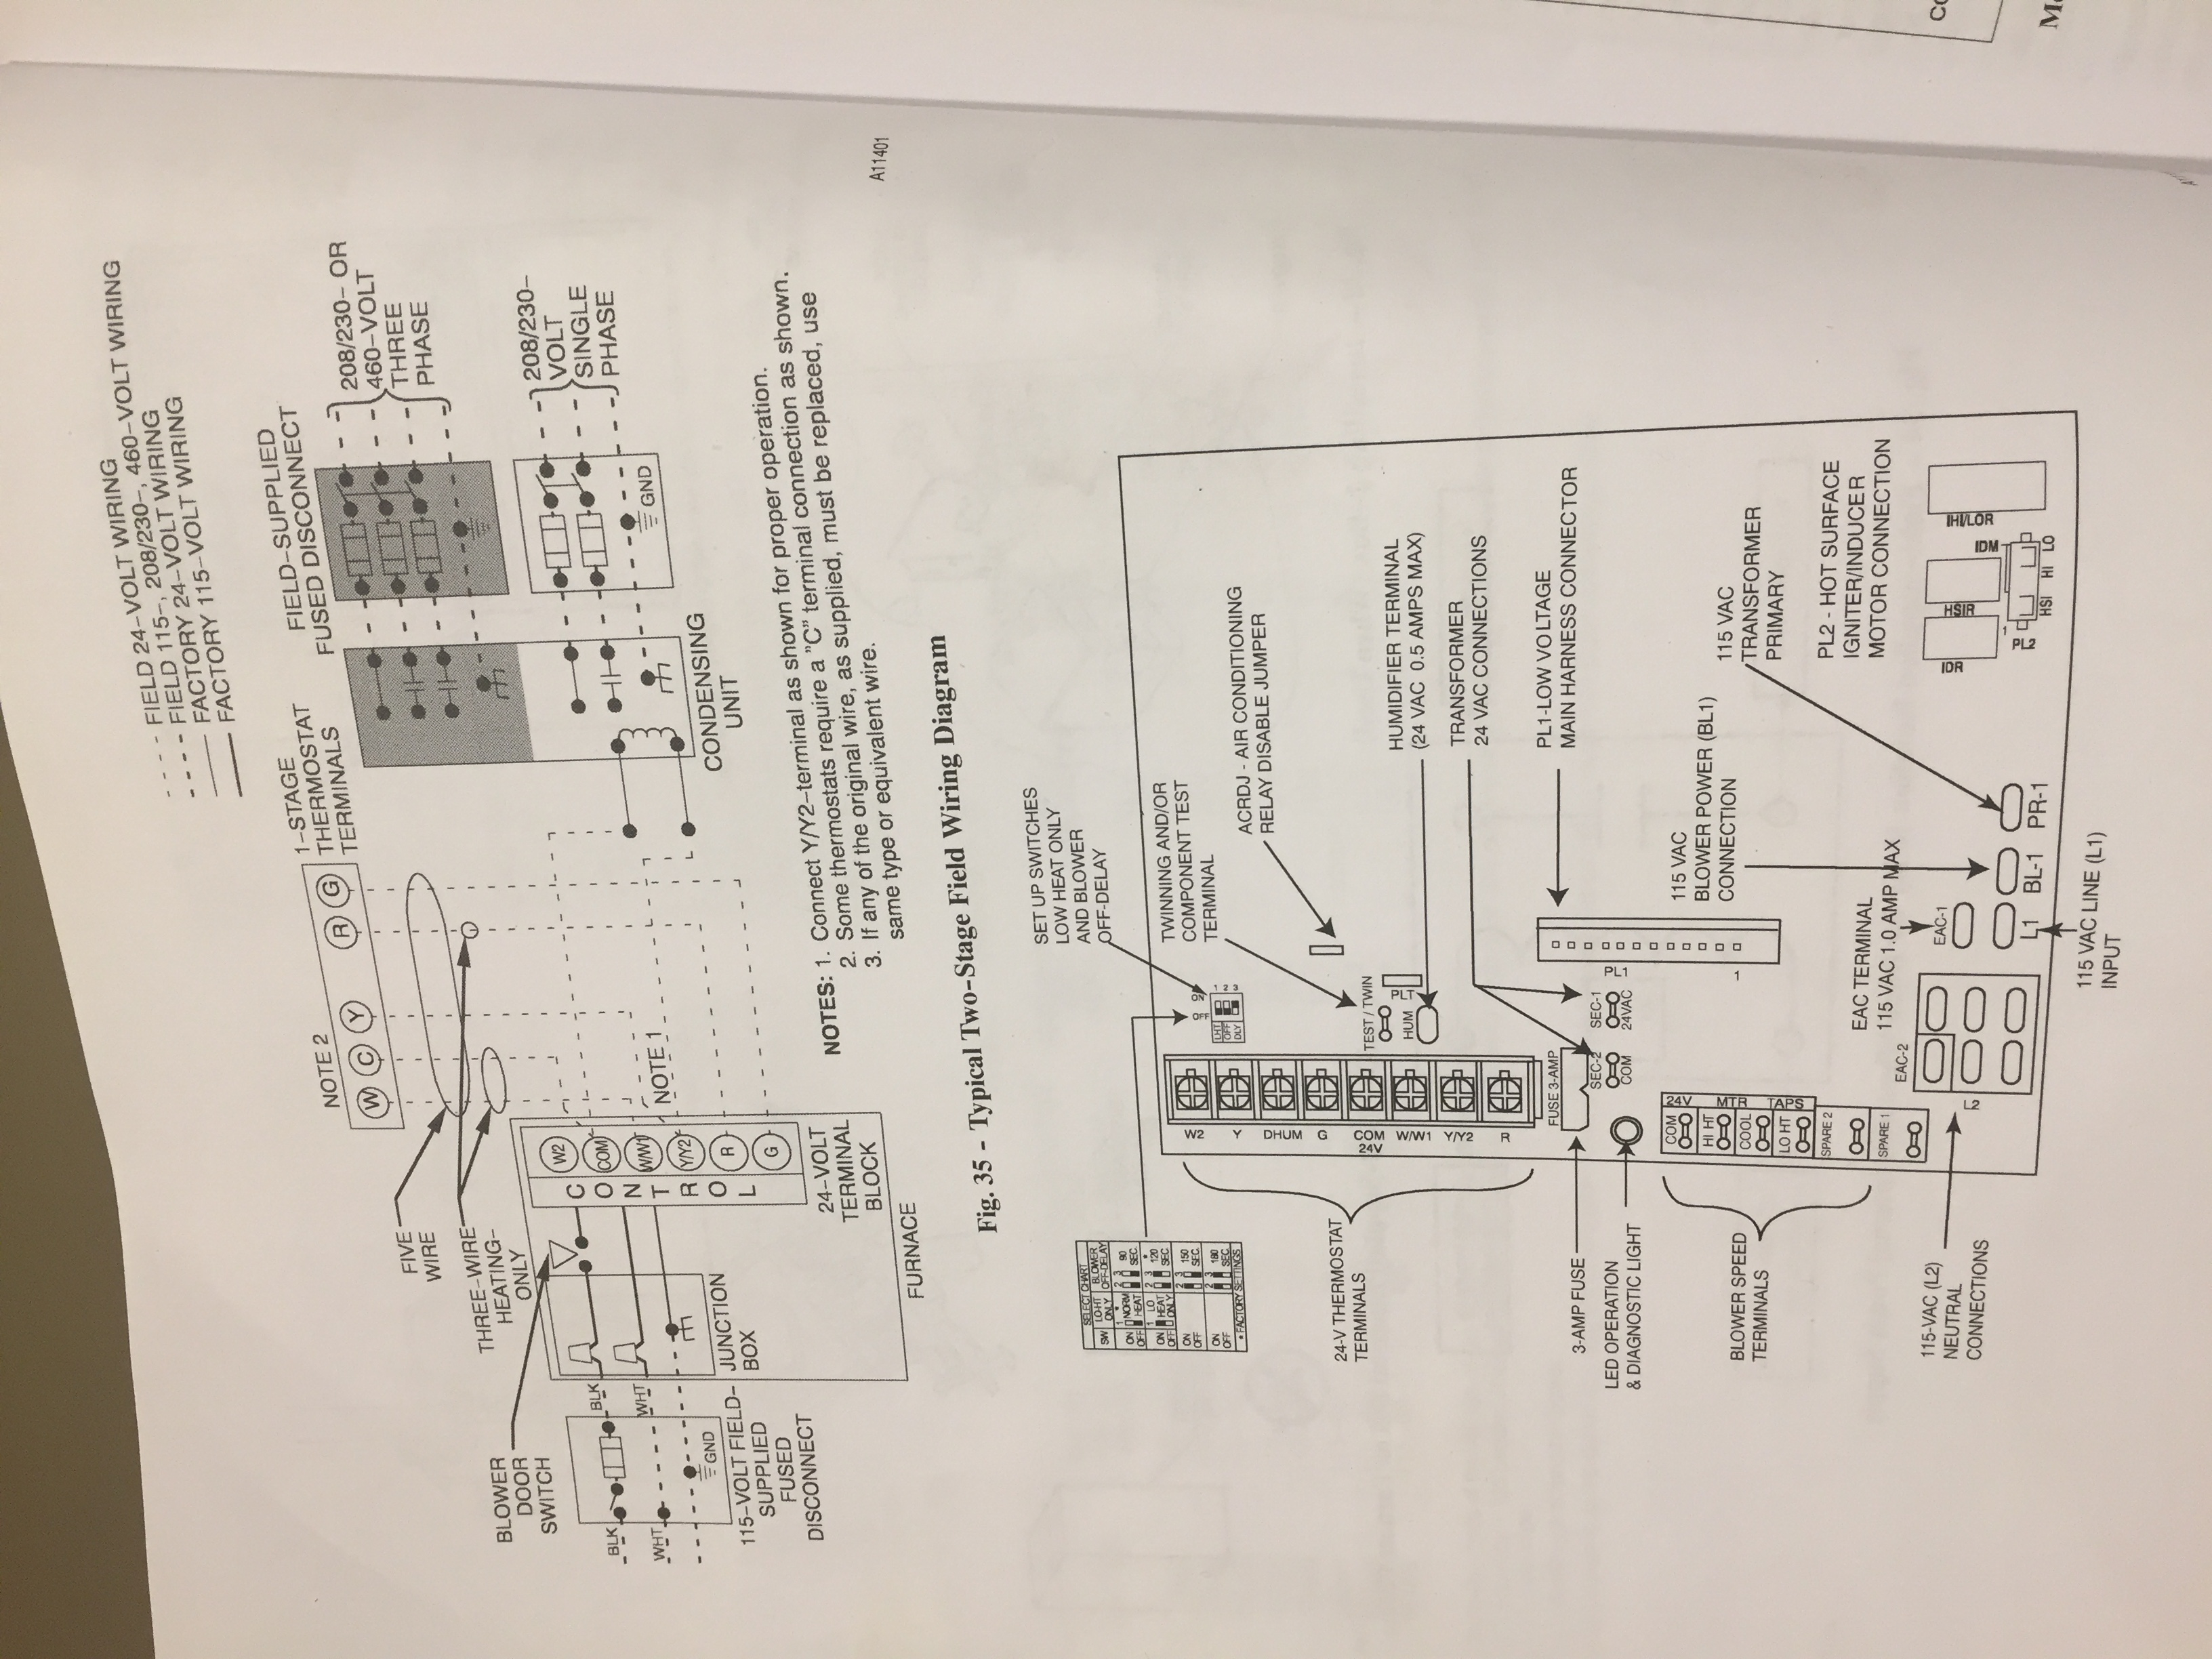 I Have A Fairly New 2 Yrs Old Payne Furnace Ac Unit Model Pg95xat Wiring Diagram Image 02image 02 00